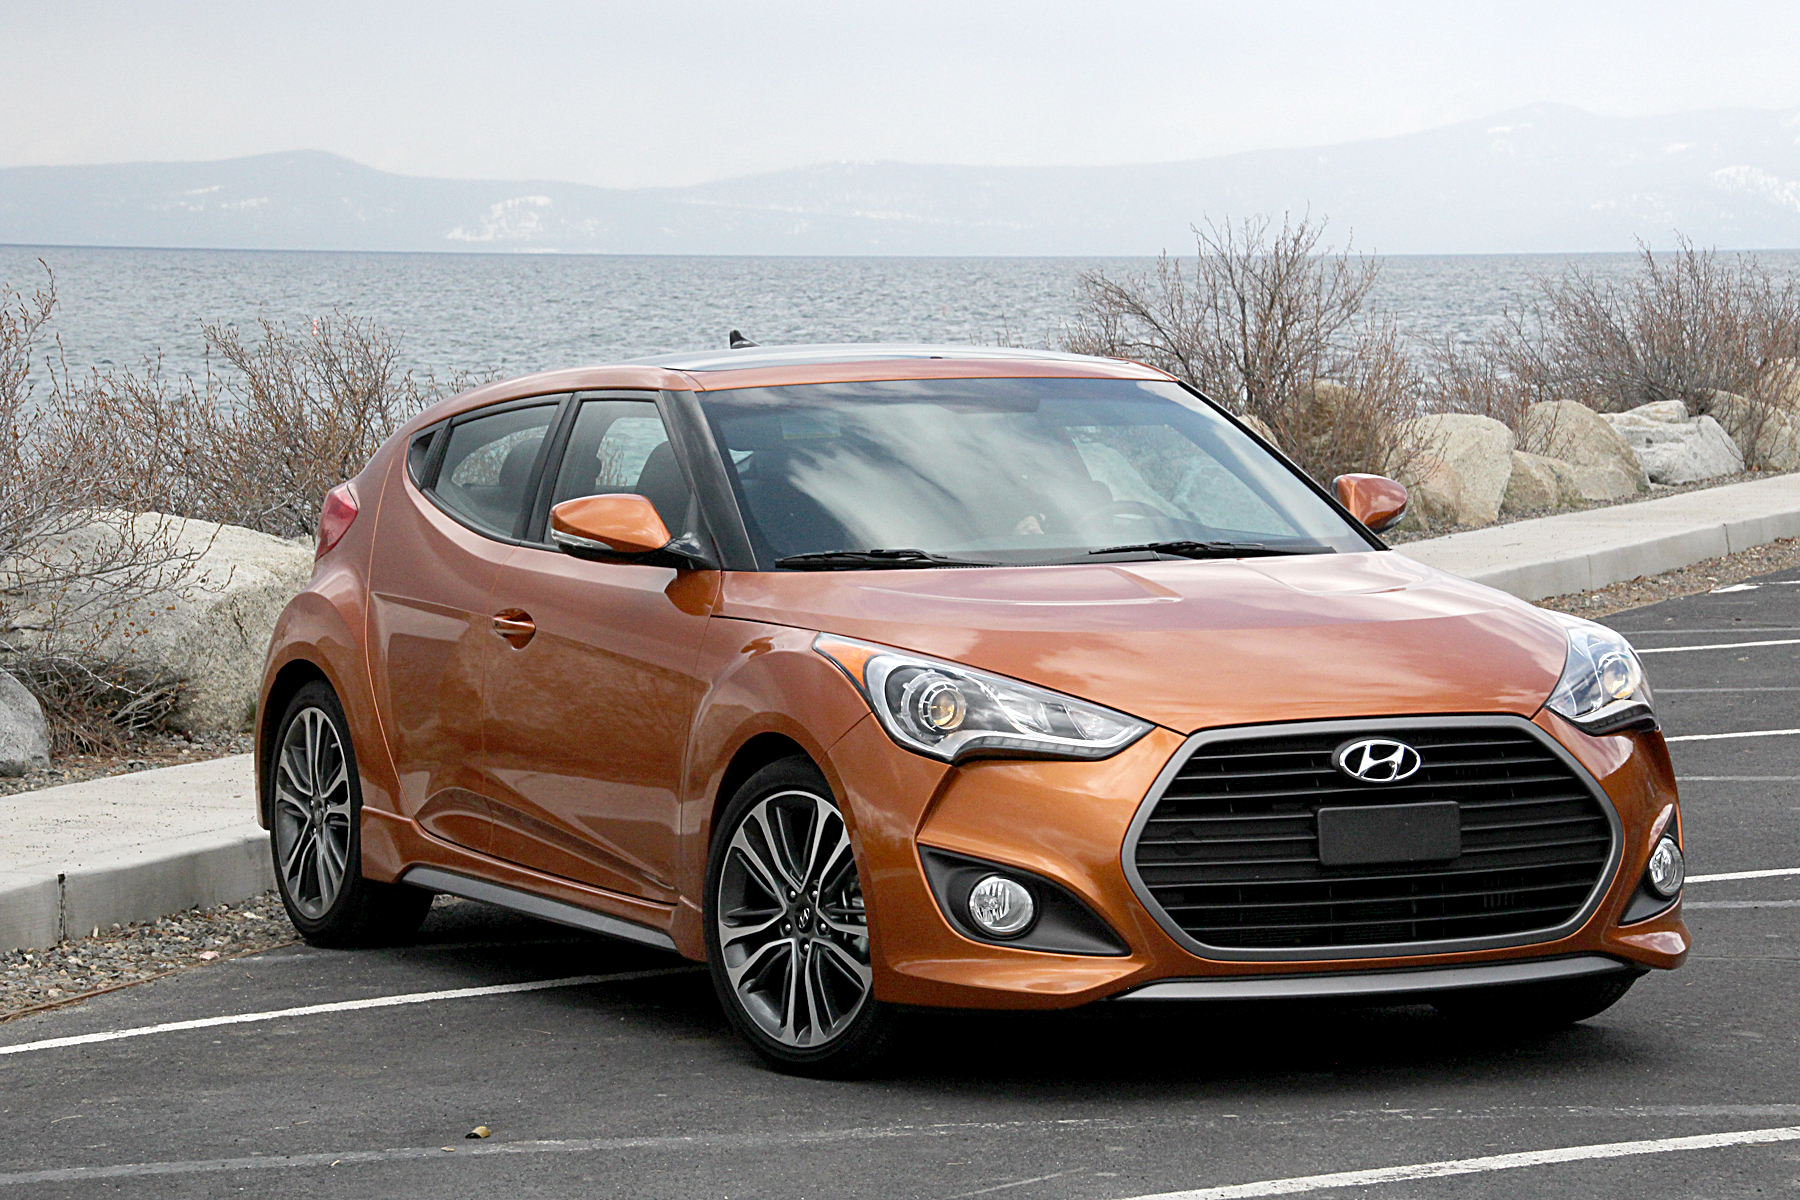 details used amazing at sale for drummondville veloster hyundai